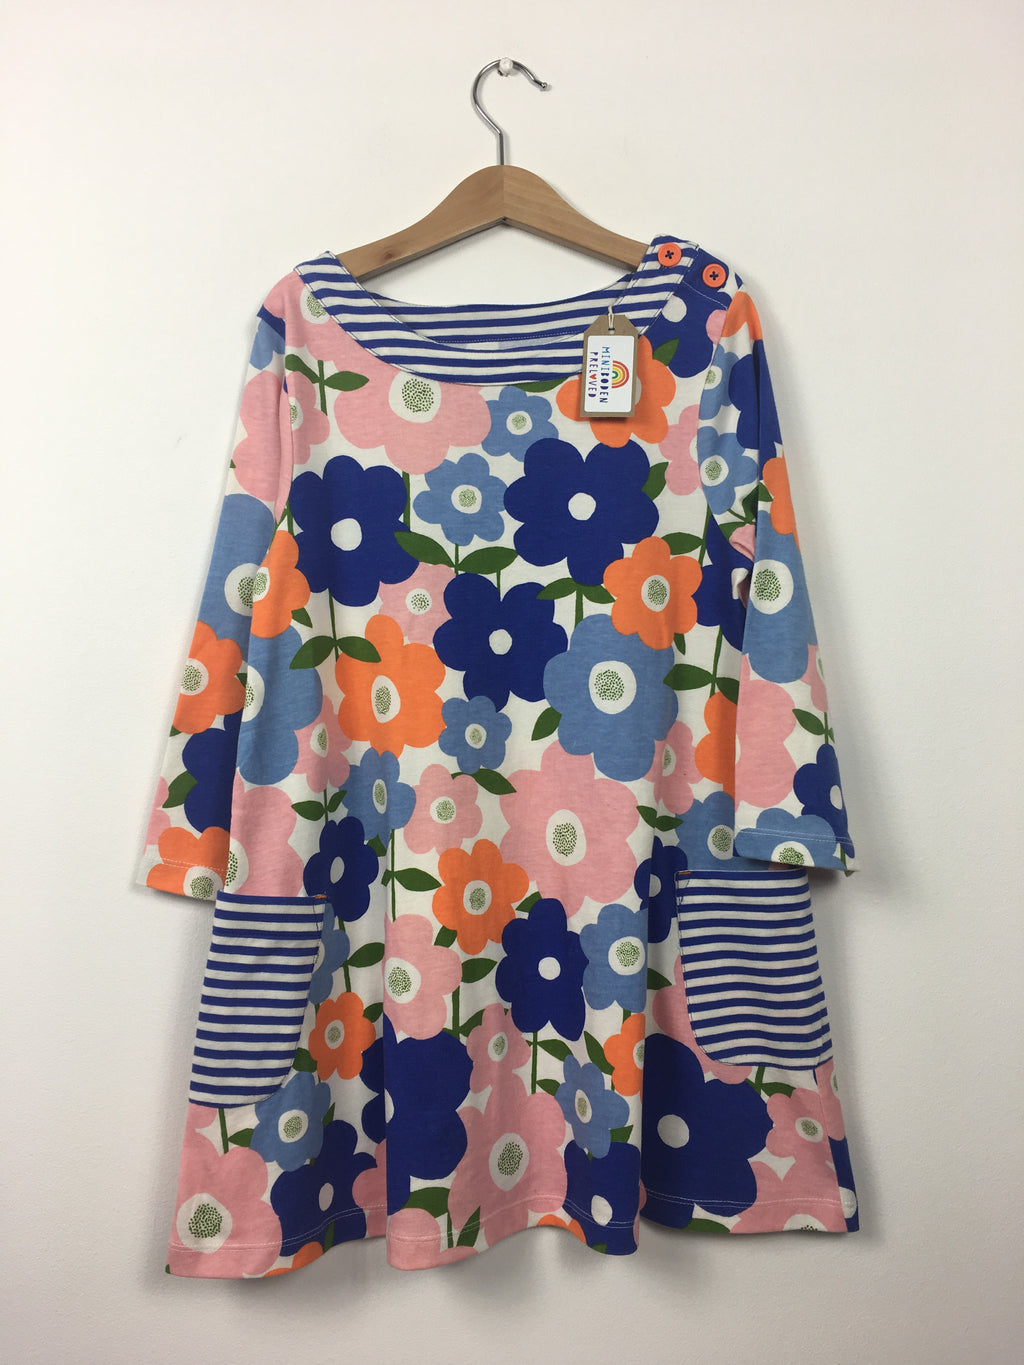 Vibrant Floral Print Tunic Dress (9-10 Years)